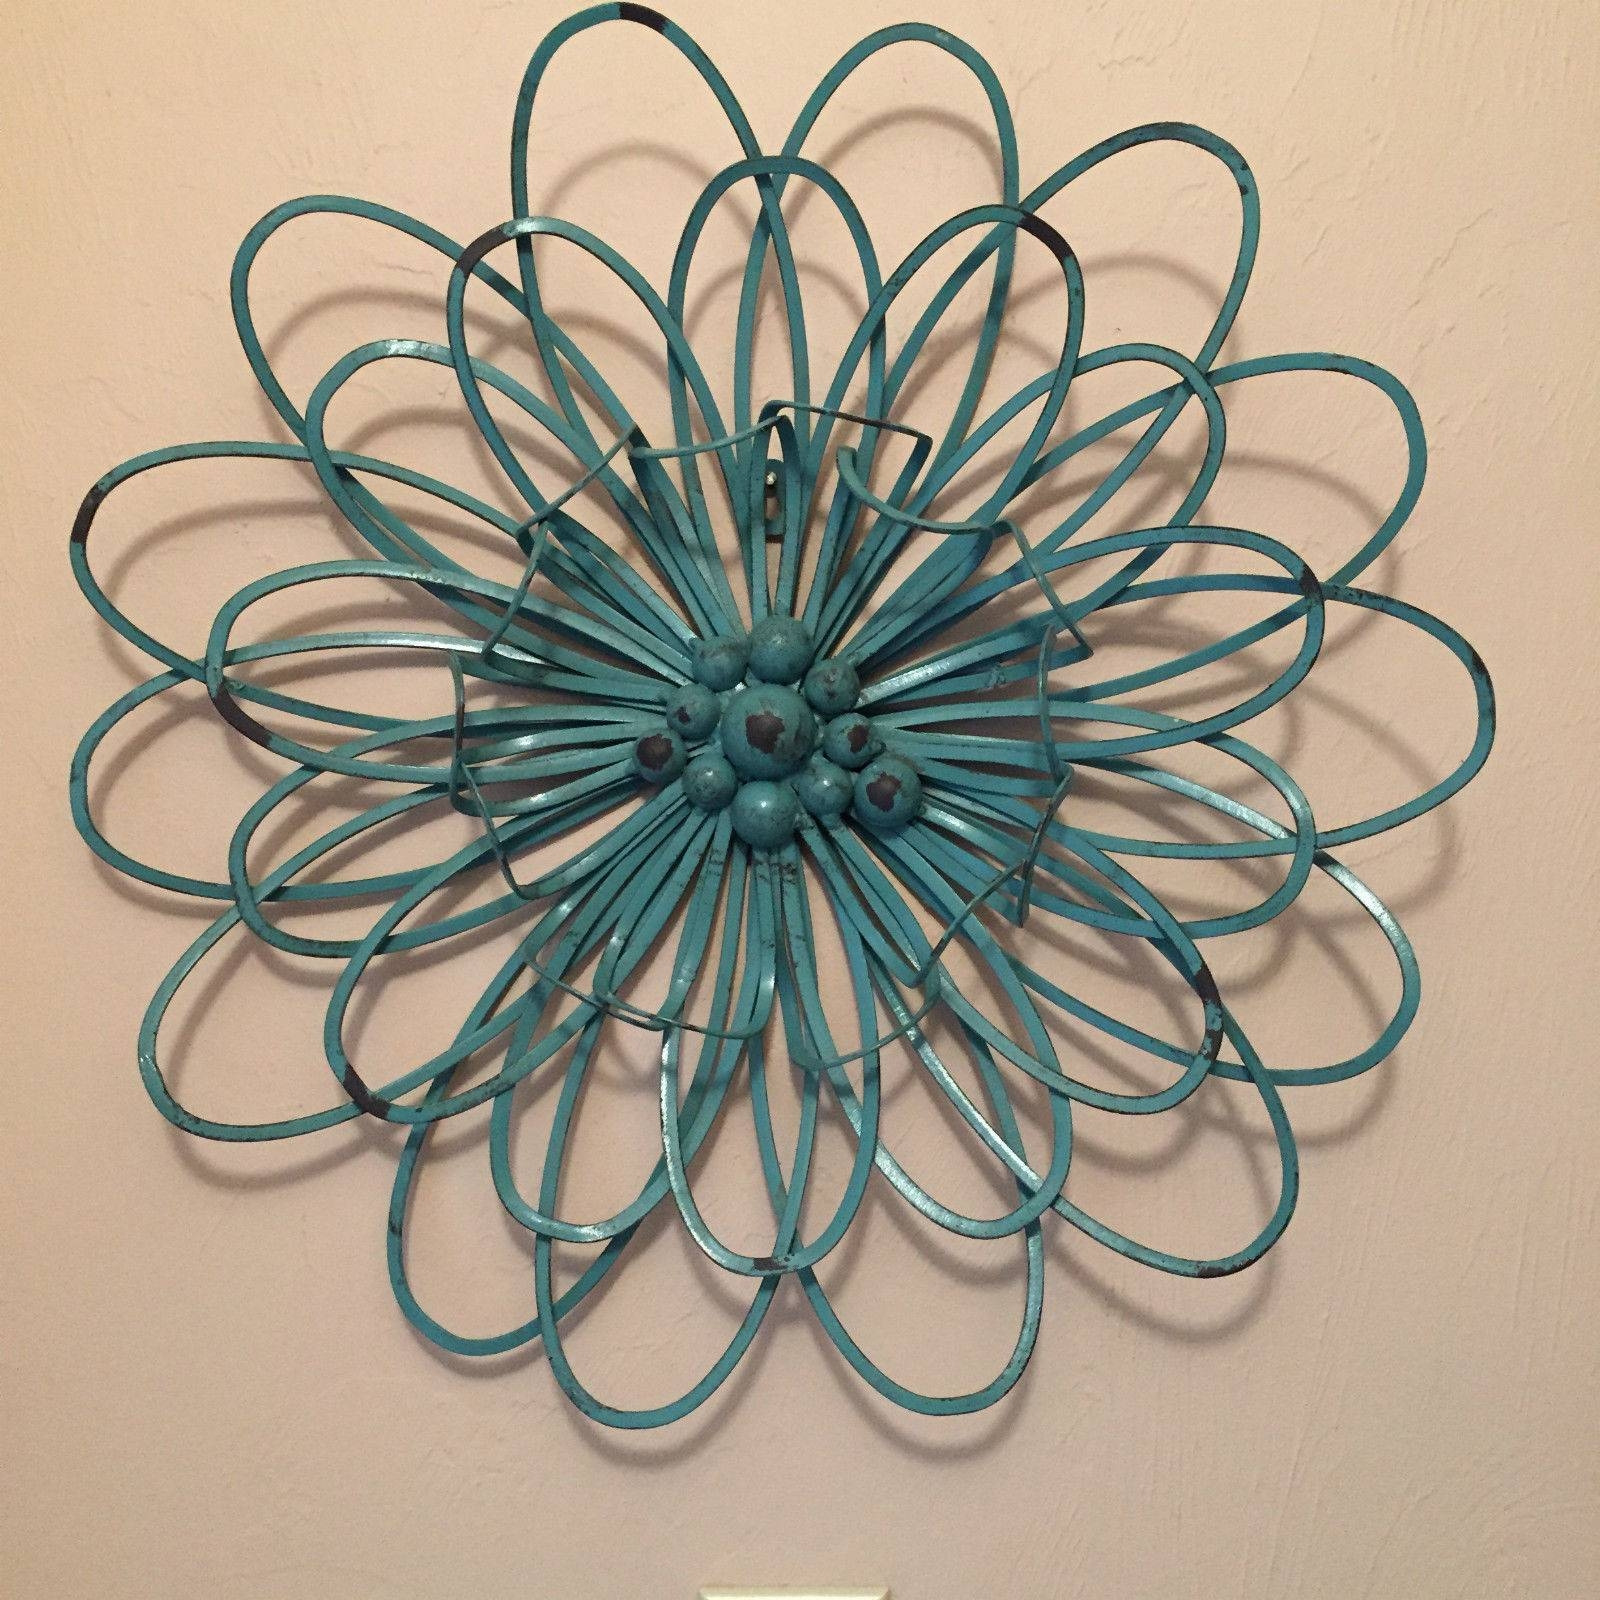 Metal Wall Art Canvas Formal Dining Room Bathroom Large – Full Circle Throughout Most Up To Date Bathroom Metal Wall Art (View 11 of 20)